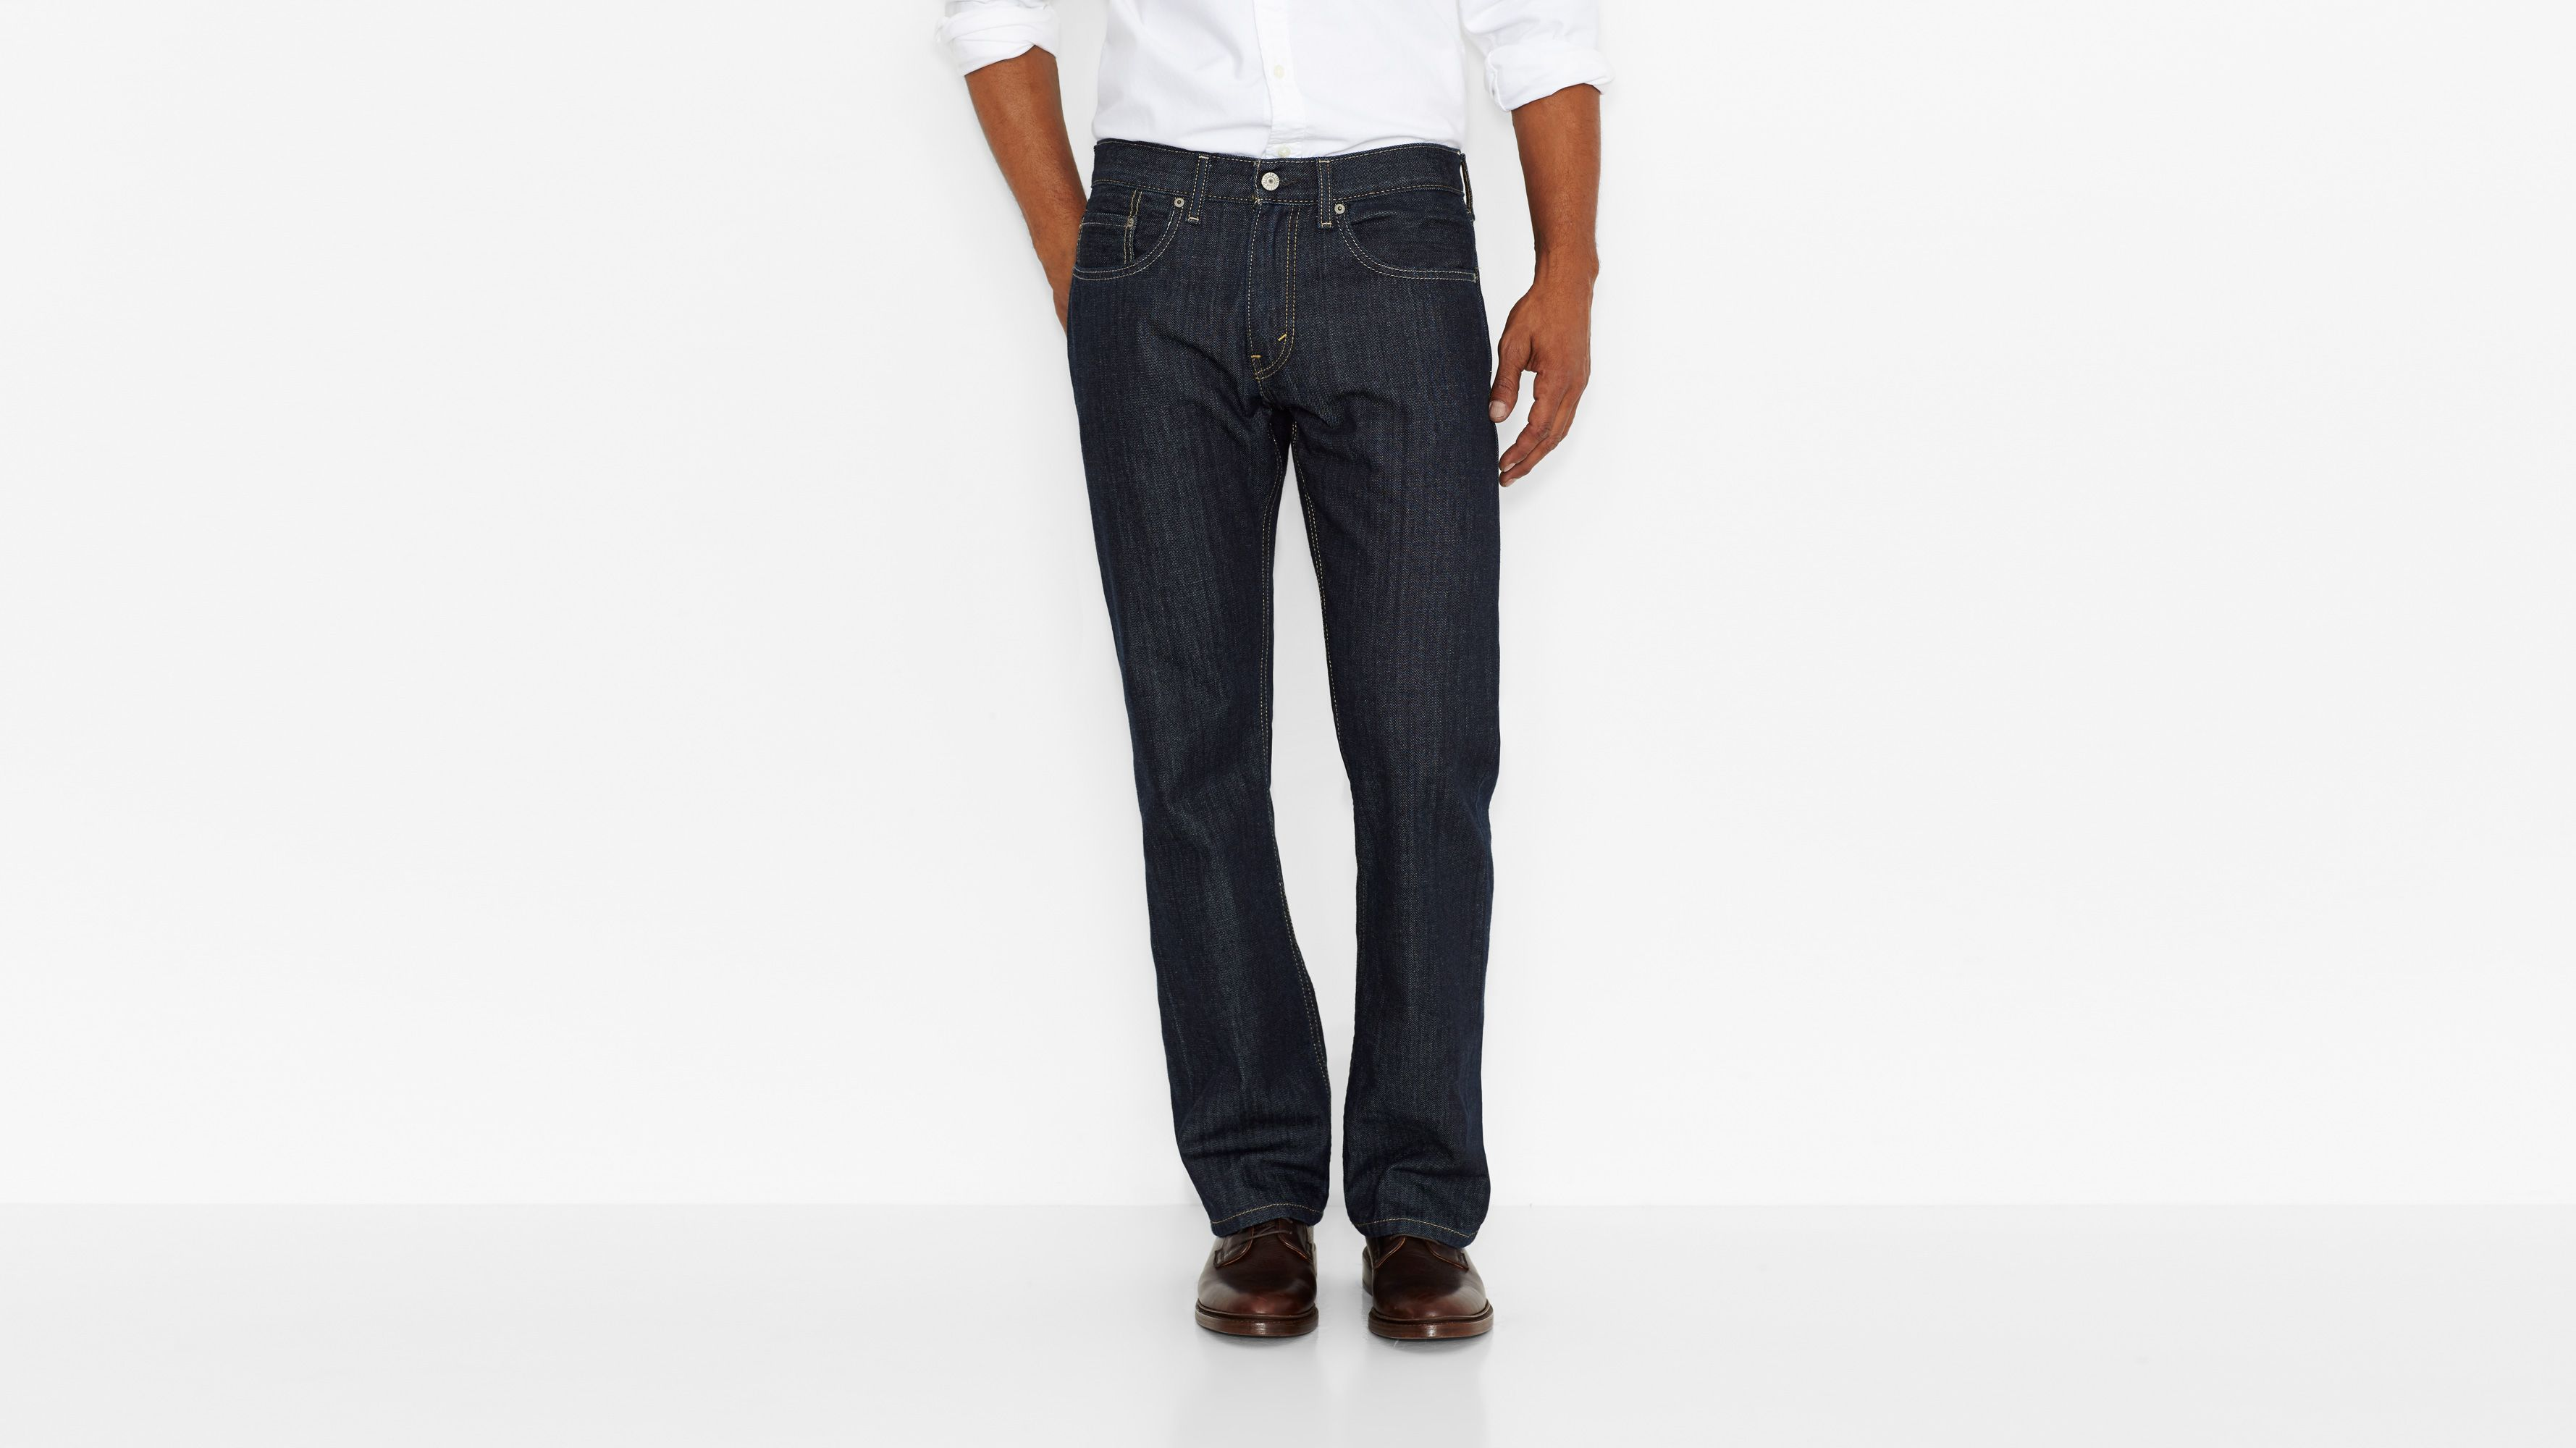 559™ Relaxed Straight Jeans (Big & Tall) - Tumbled Rigid